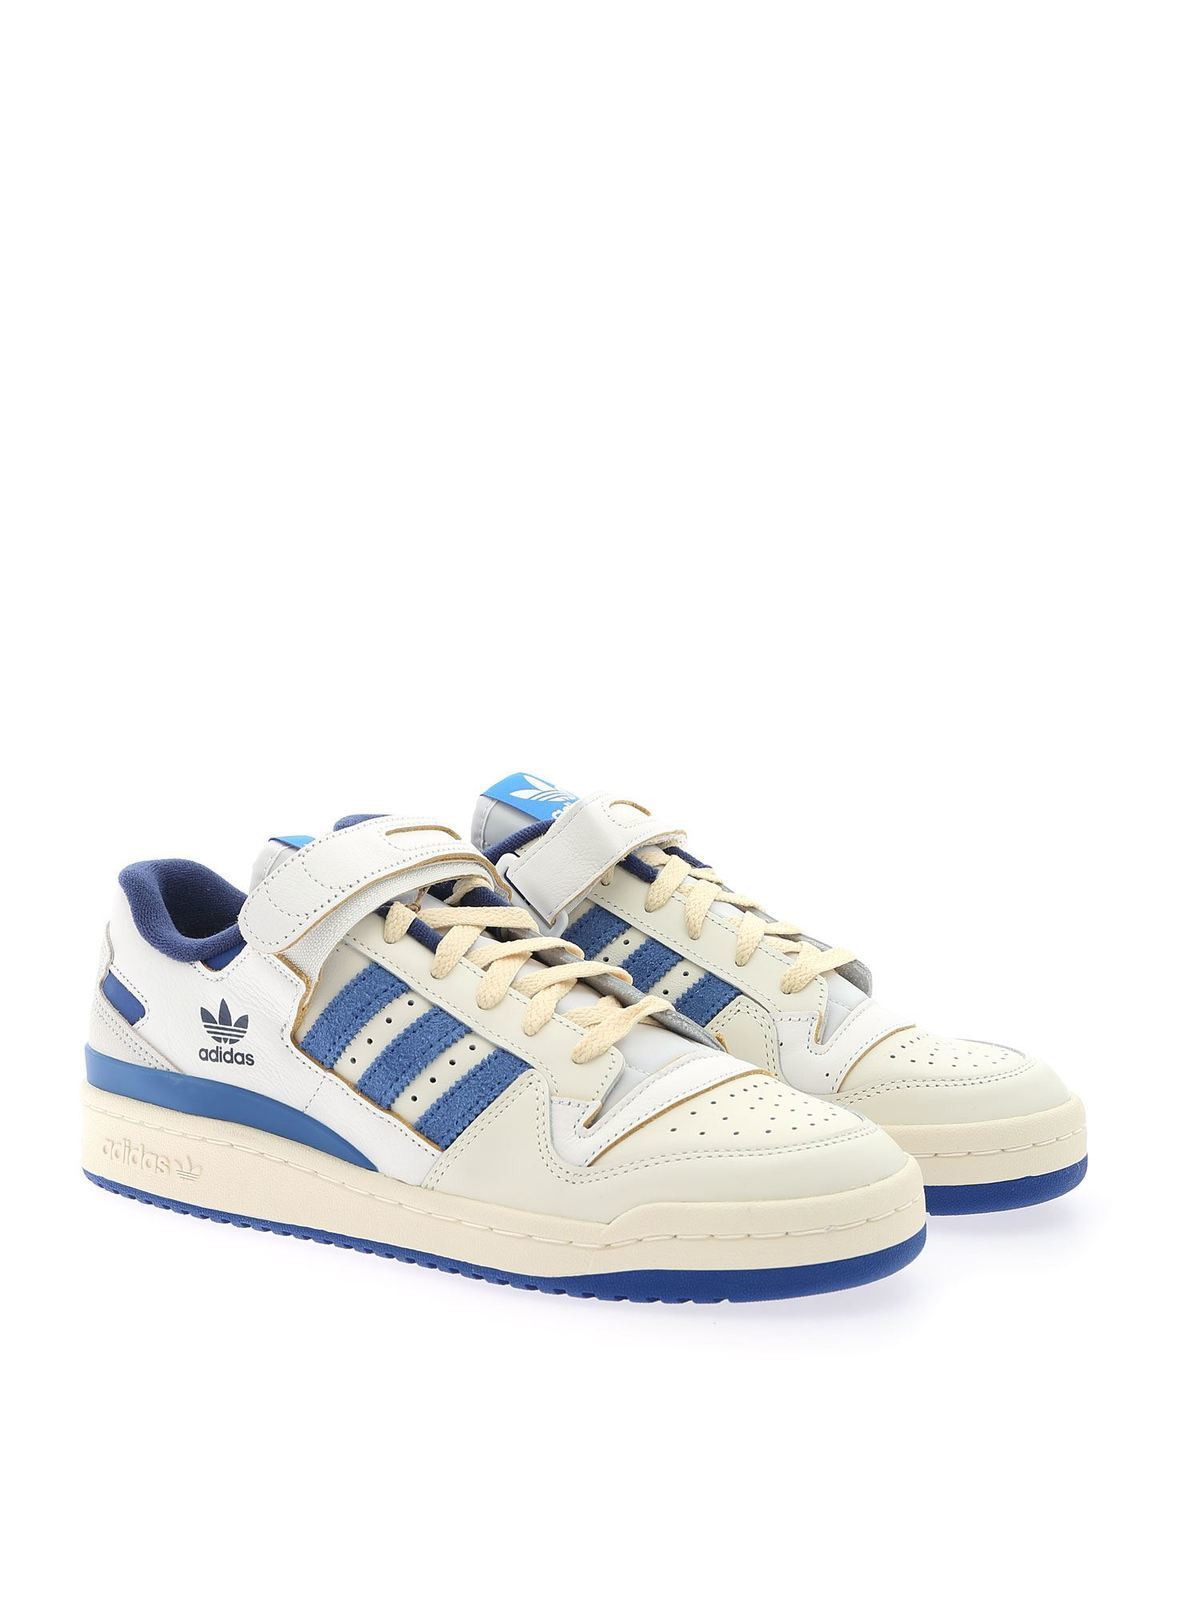 Adidas Originals - Forum 84 Low sneakers in white - trainers - S23764